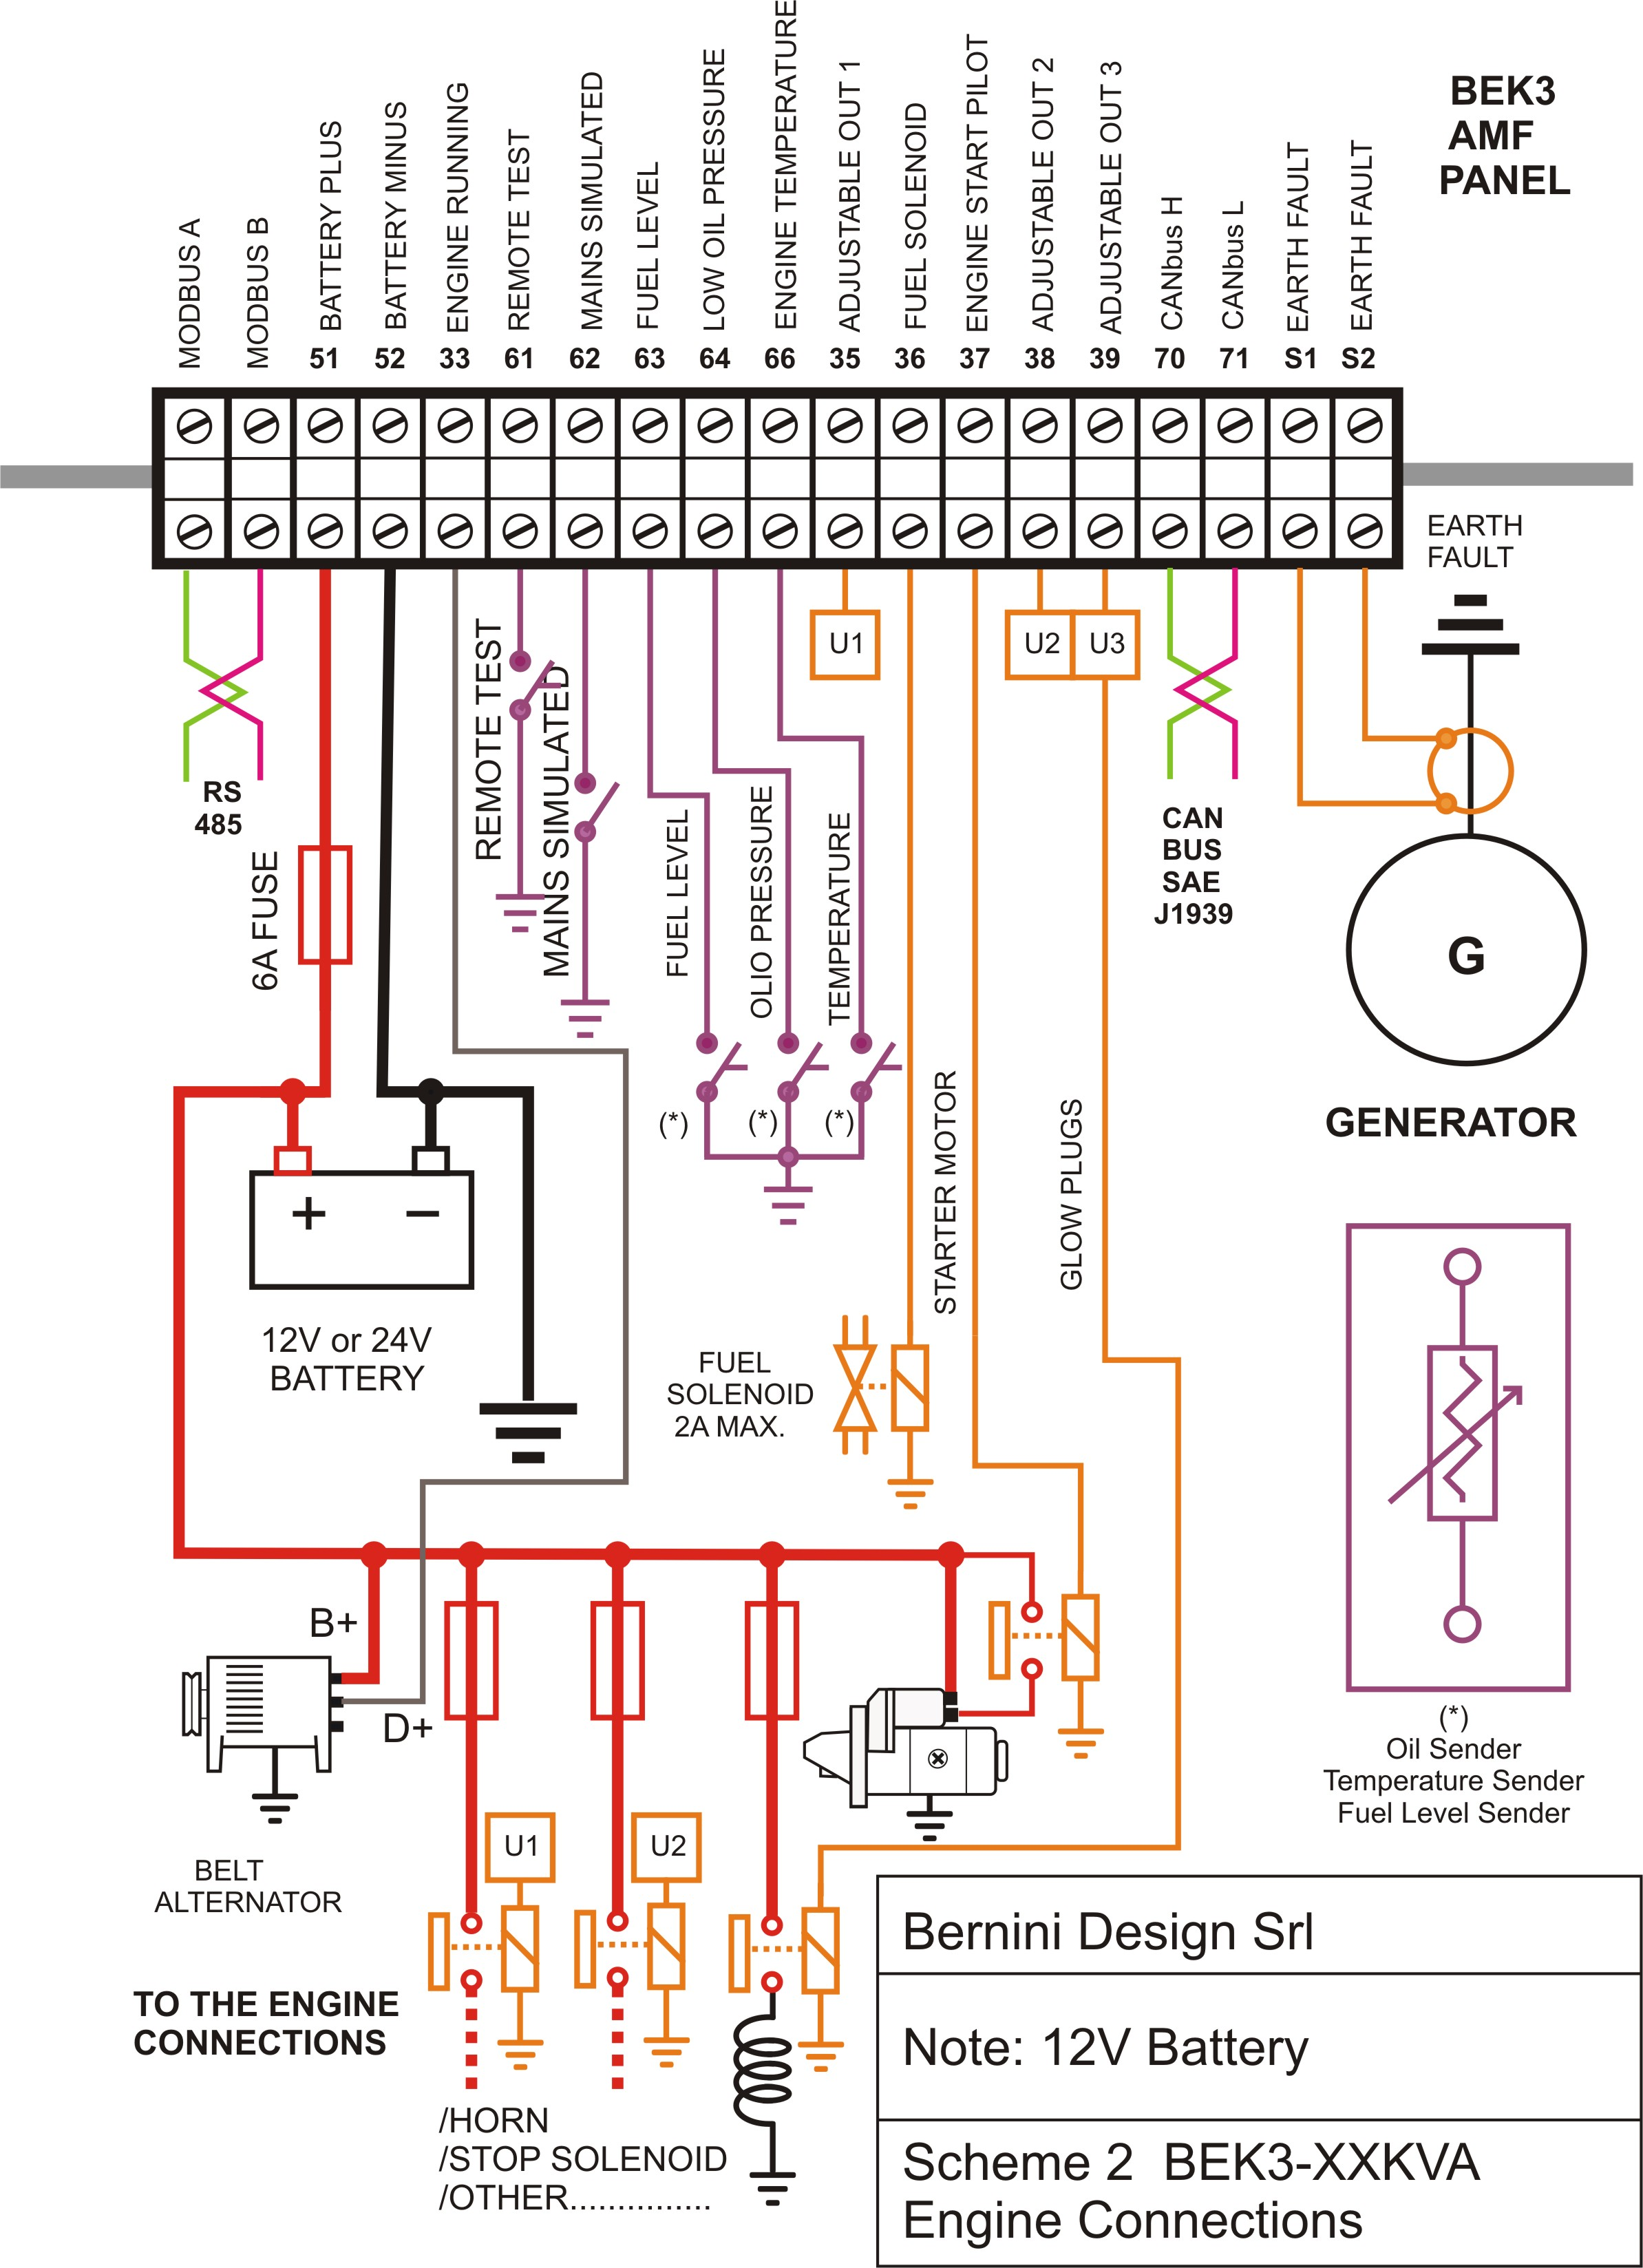 Diesel Generator Control Panel Wiring Diagram Engine Connections1 auto mains failure control panel genset controller controller wire diagram for 3246e2 lift at mifinder.co